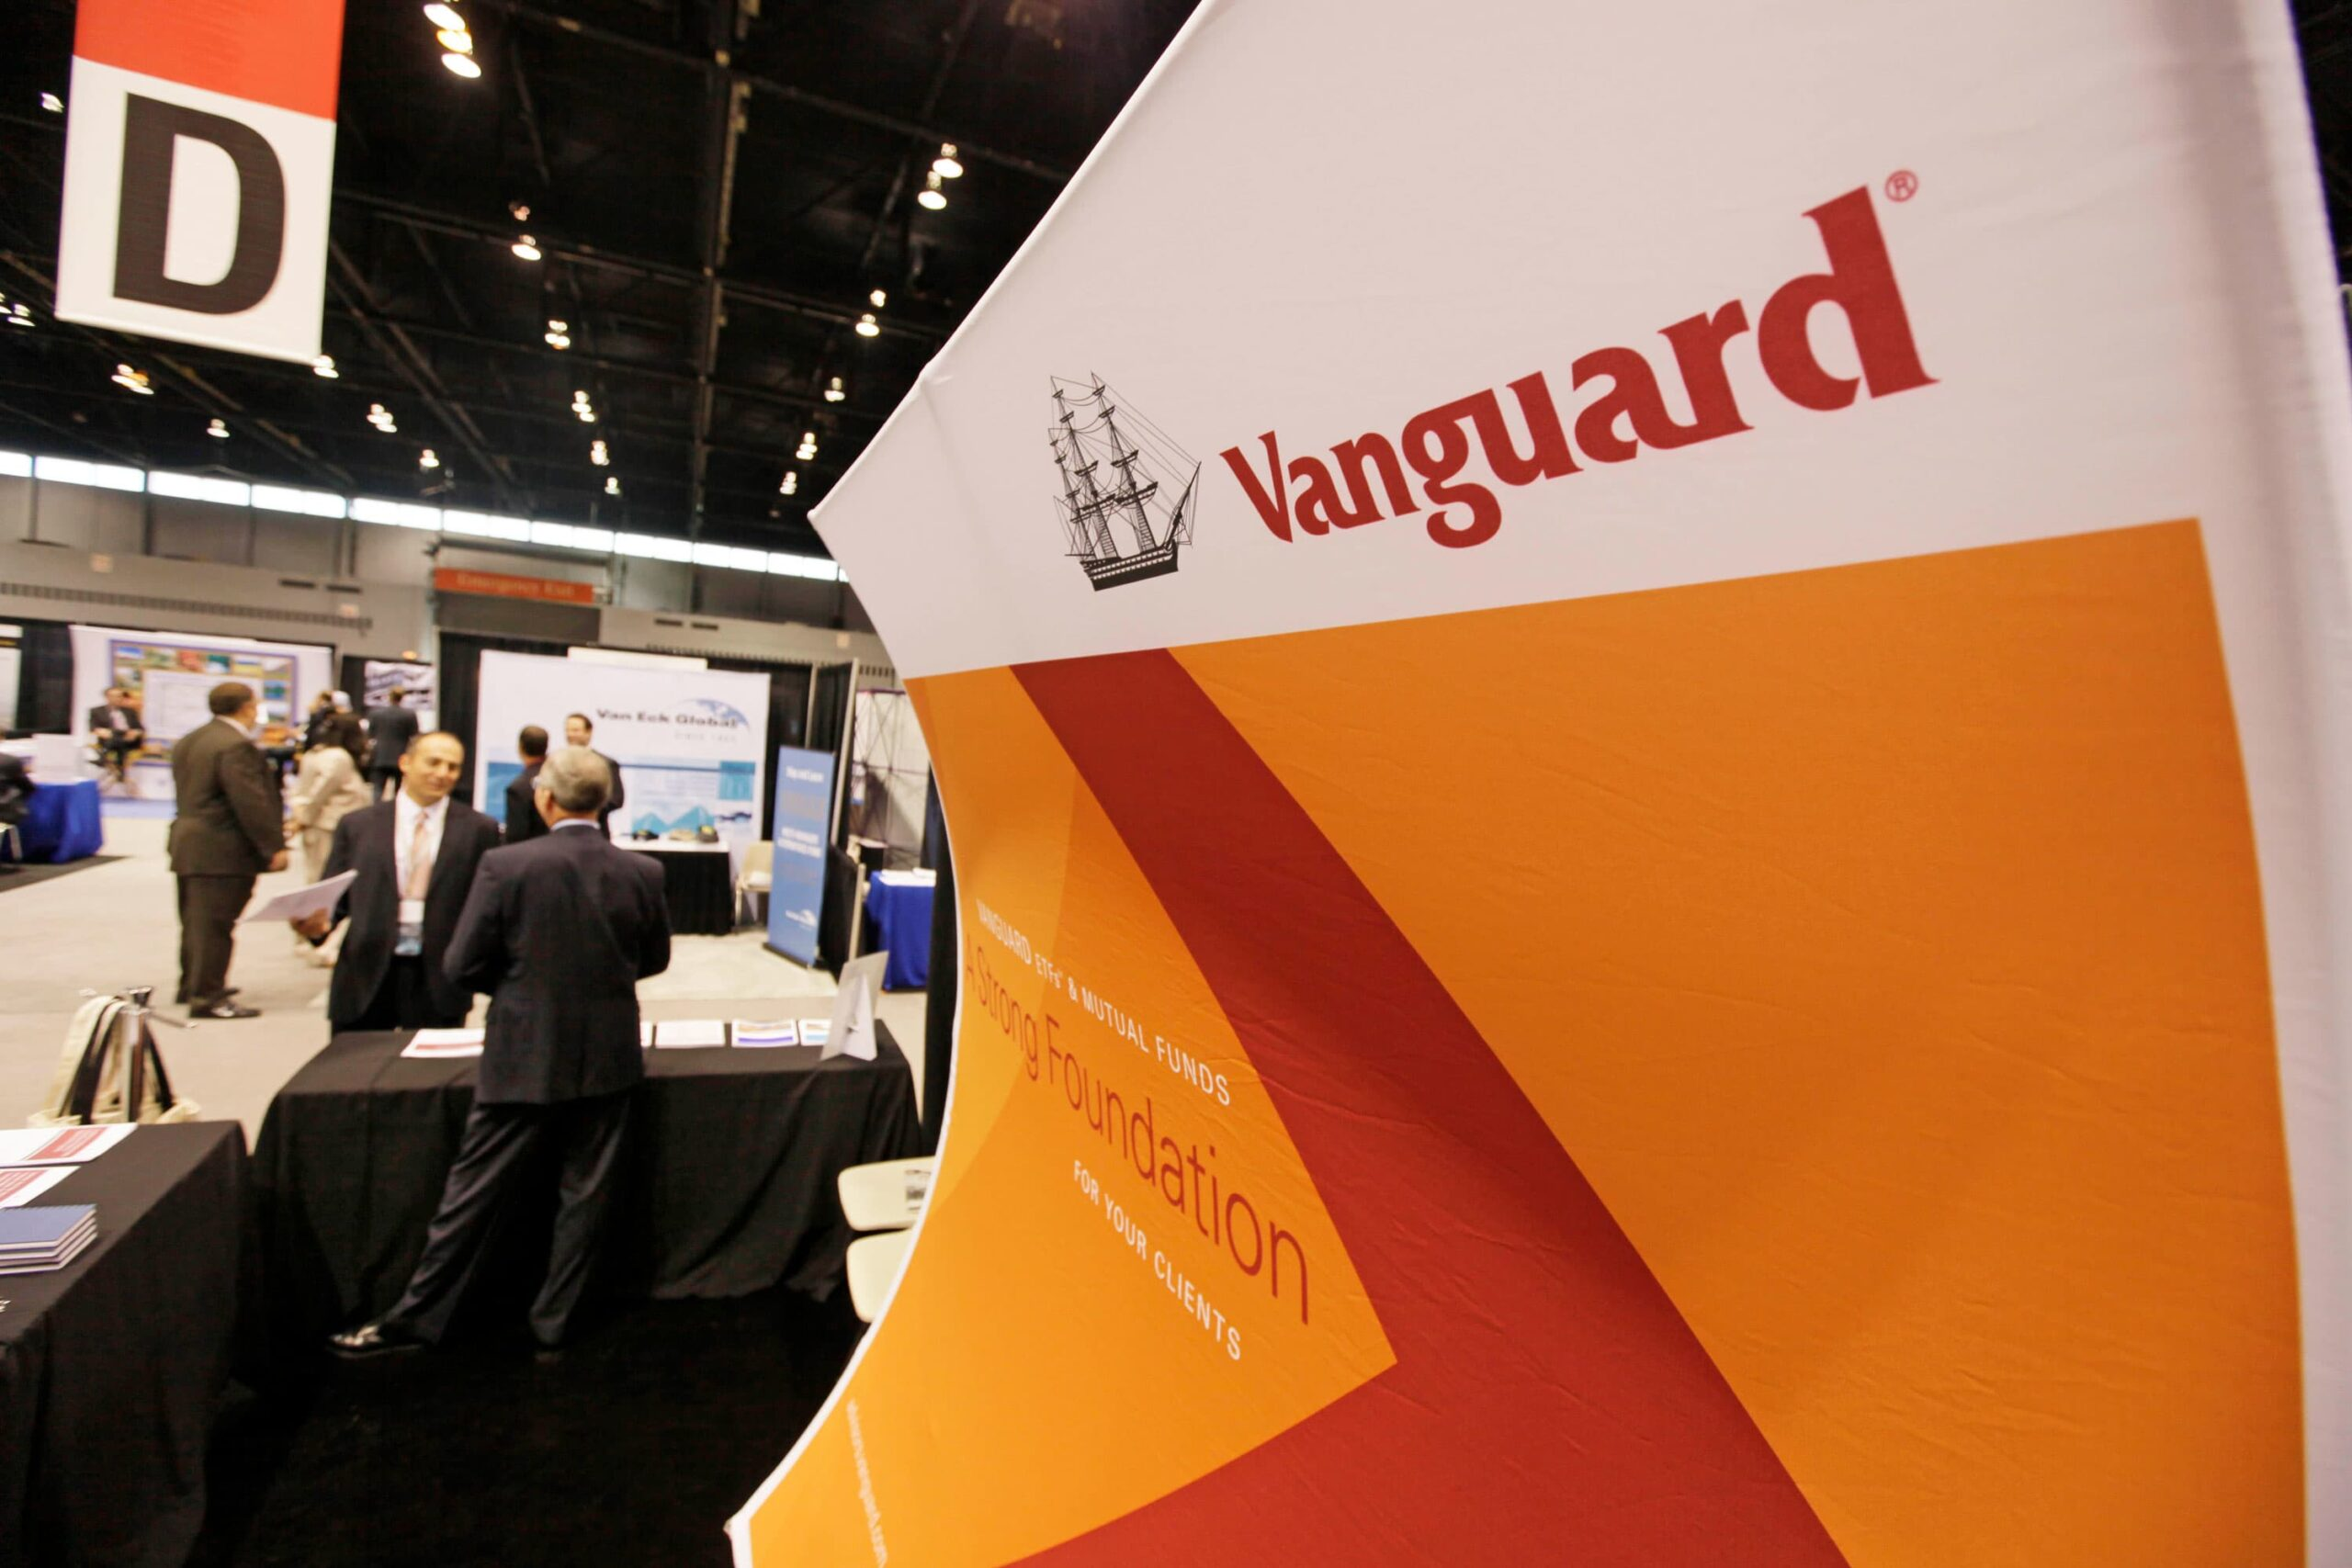 Vanguard says it'll give staff $1,000 to get Covid-19 vaccine